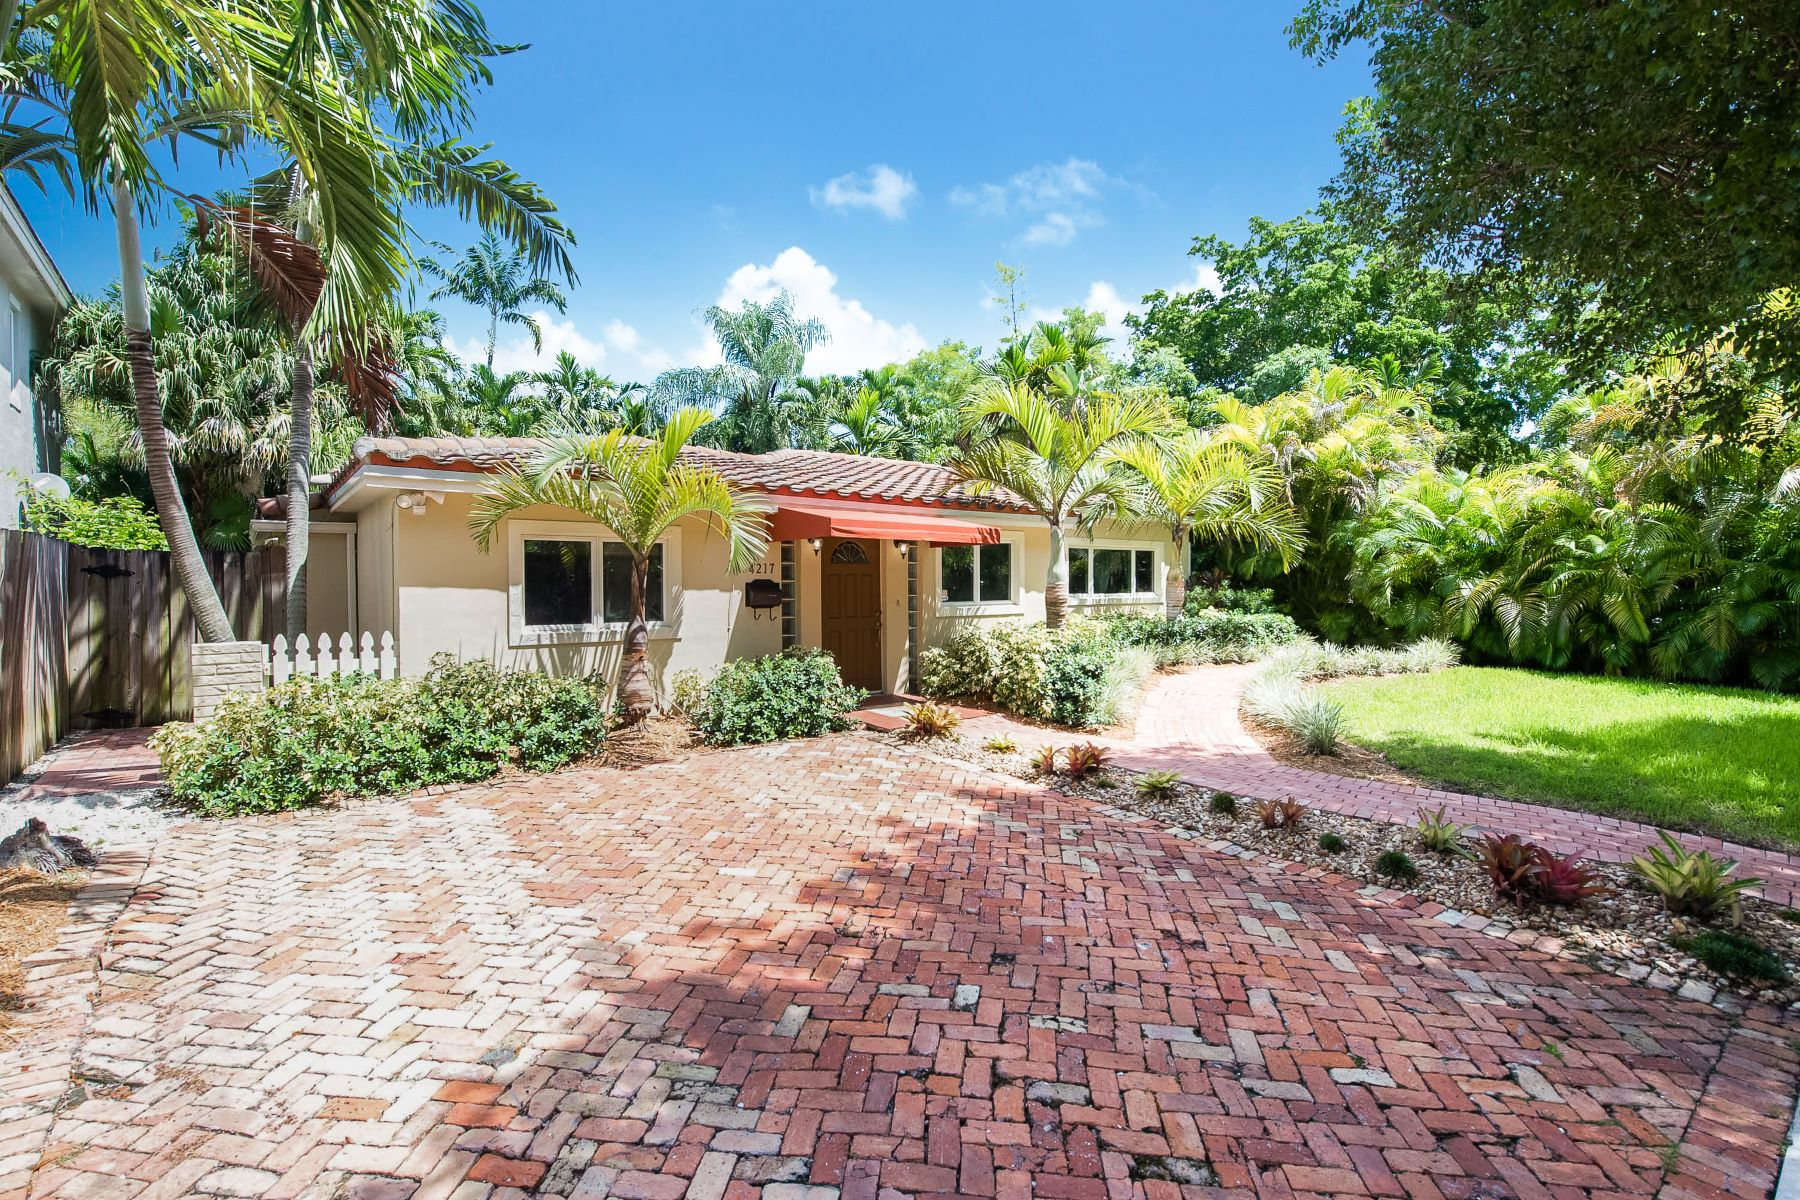 Single Family Home for Sale at 4217 Anne Ct 4217 Anne Ct Coconut Grove, Florida 33133 United States